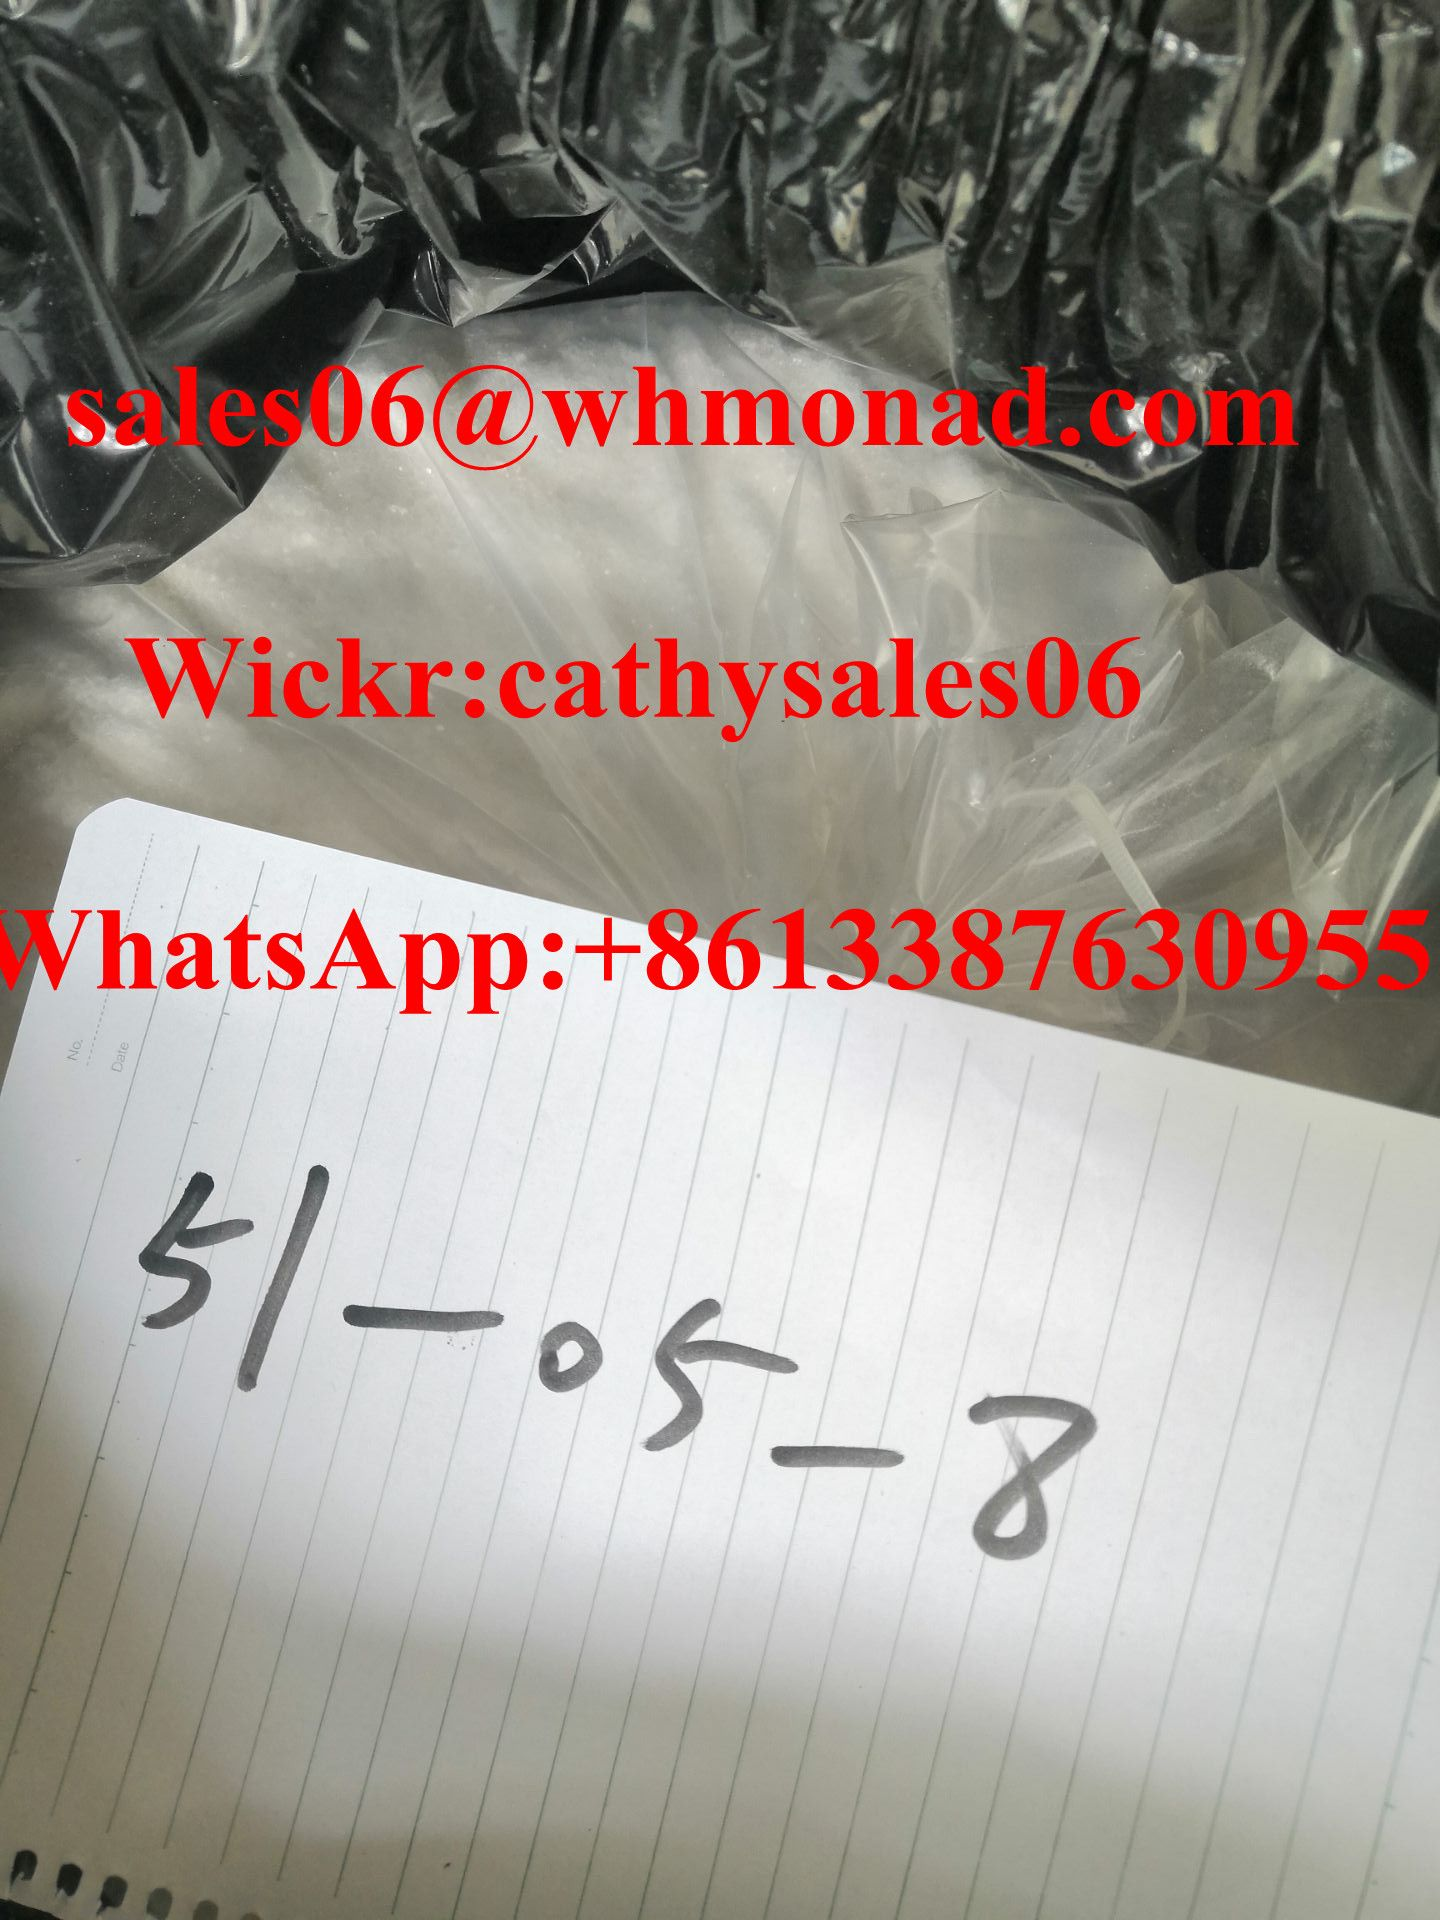 Local Anesthetic Powder Procaine HCl CAS No. 51-05-8 C13H21ClN2O2